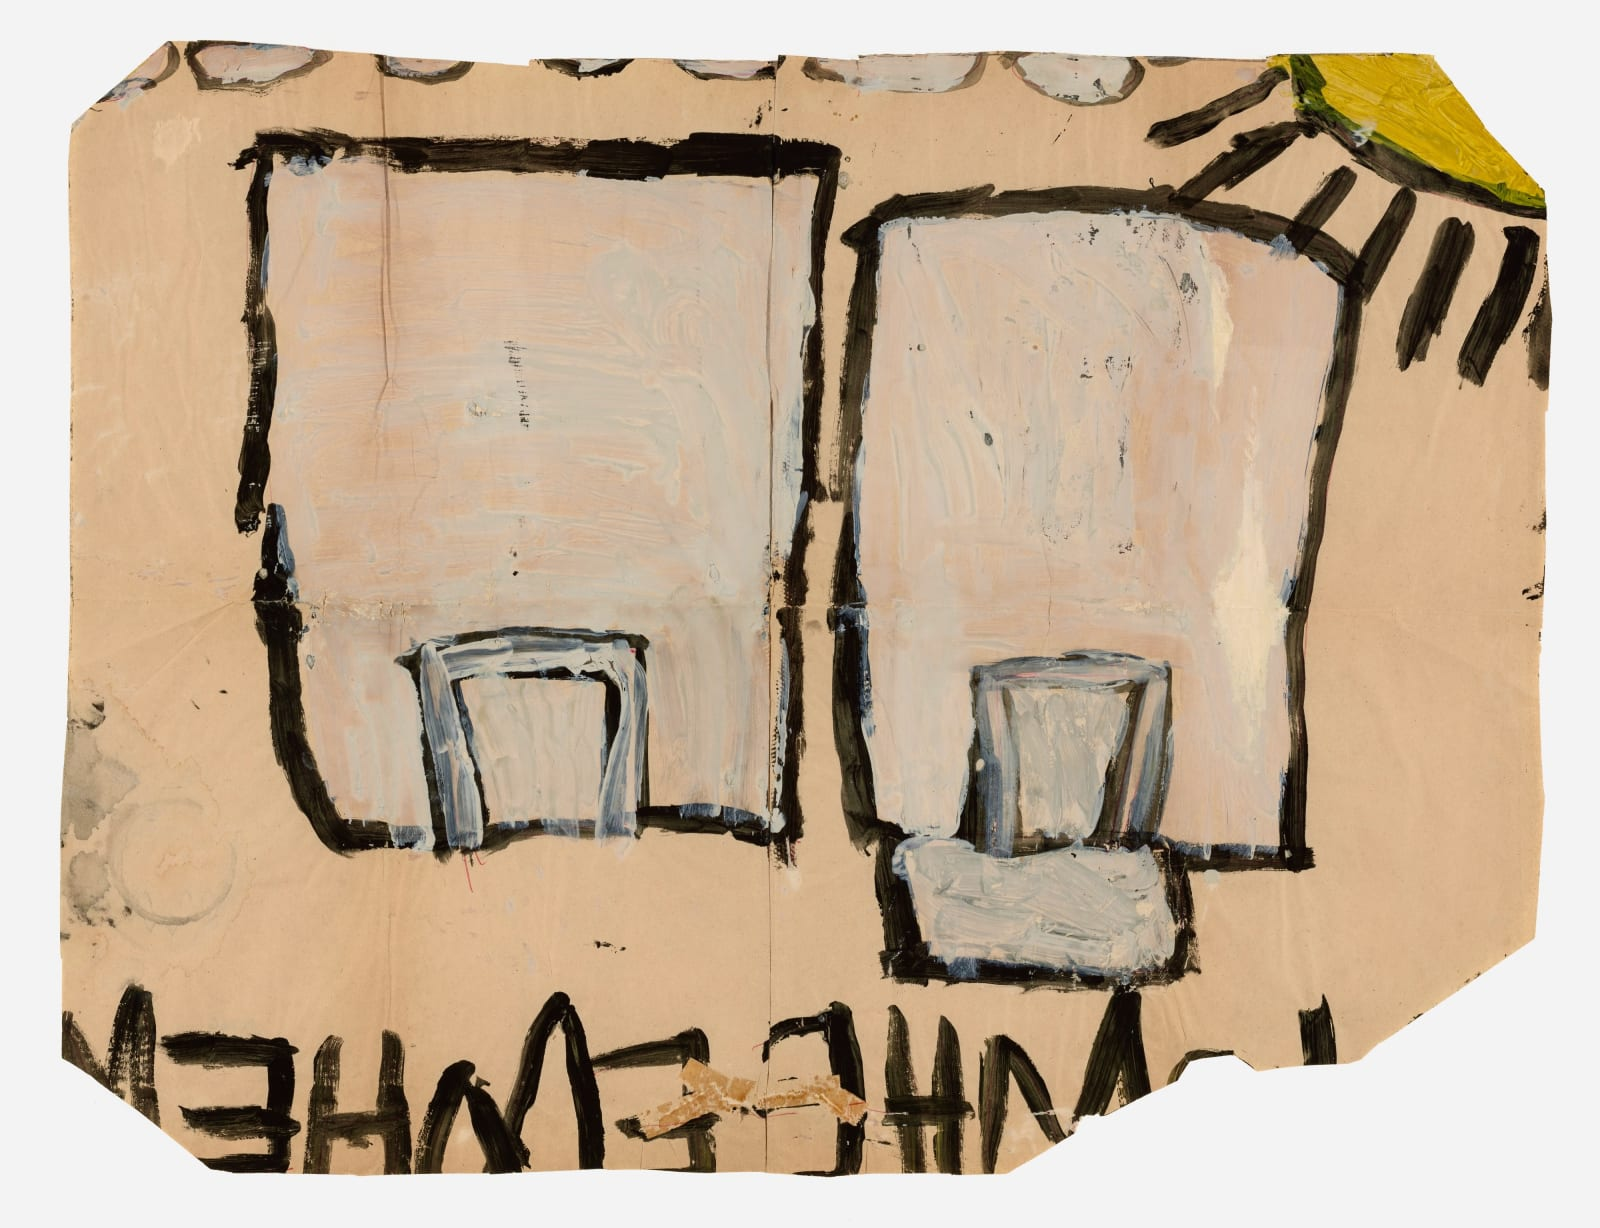 Untitled (No.14), 1972-1980 Tempera on paper 21 x 28 in (53.3 x 71.1 cm) (LM 125)